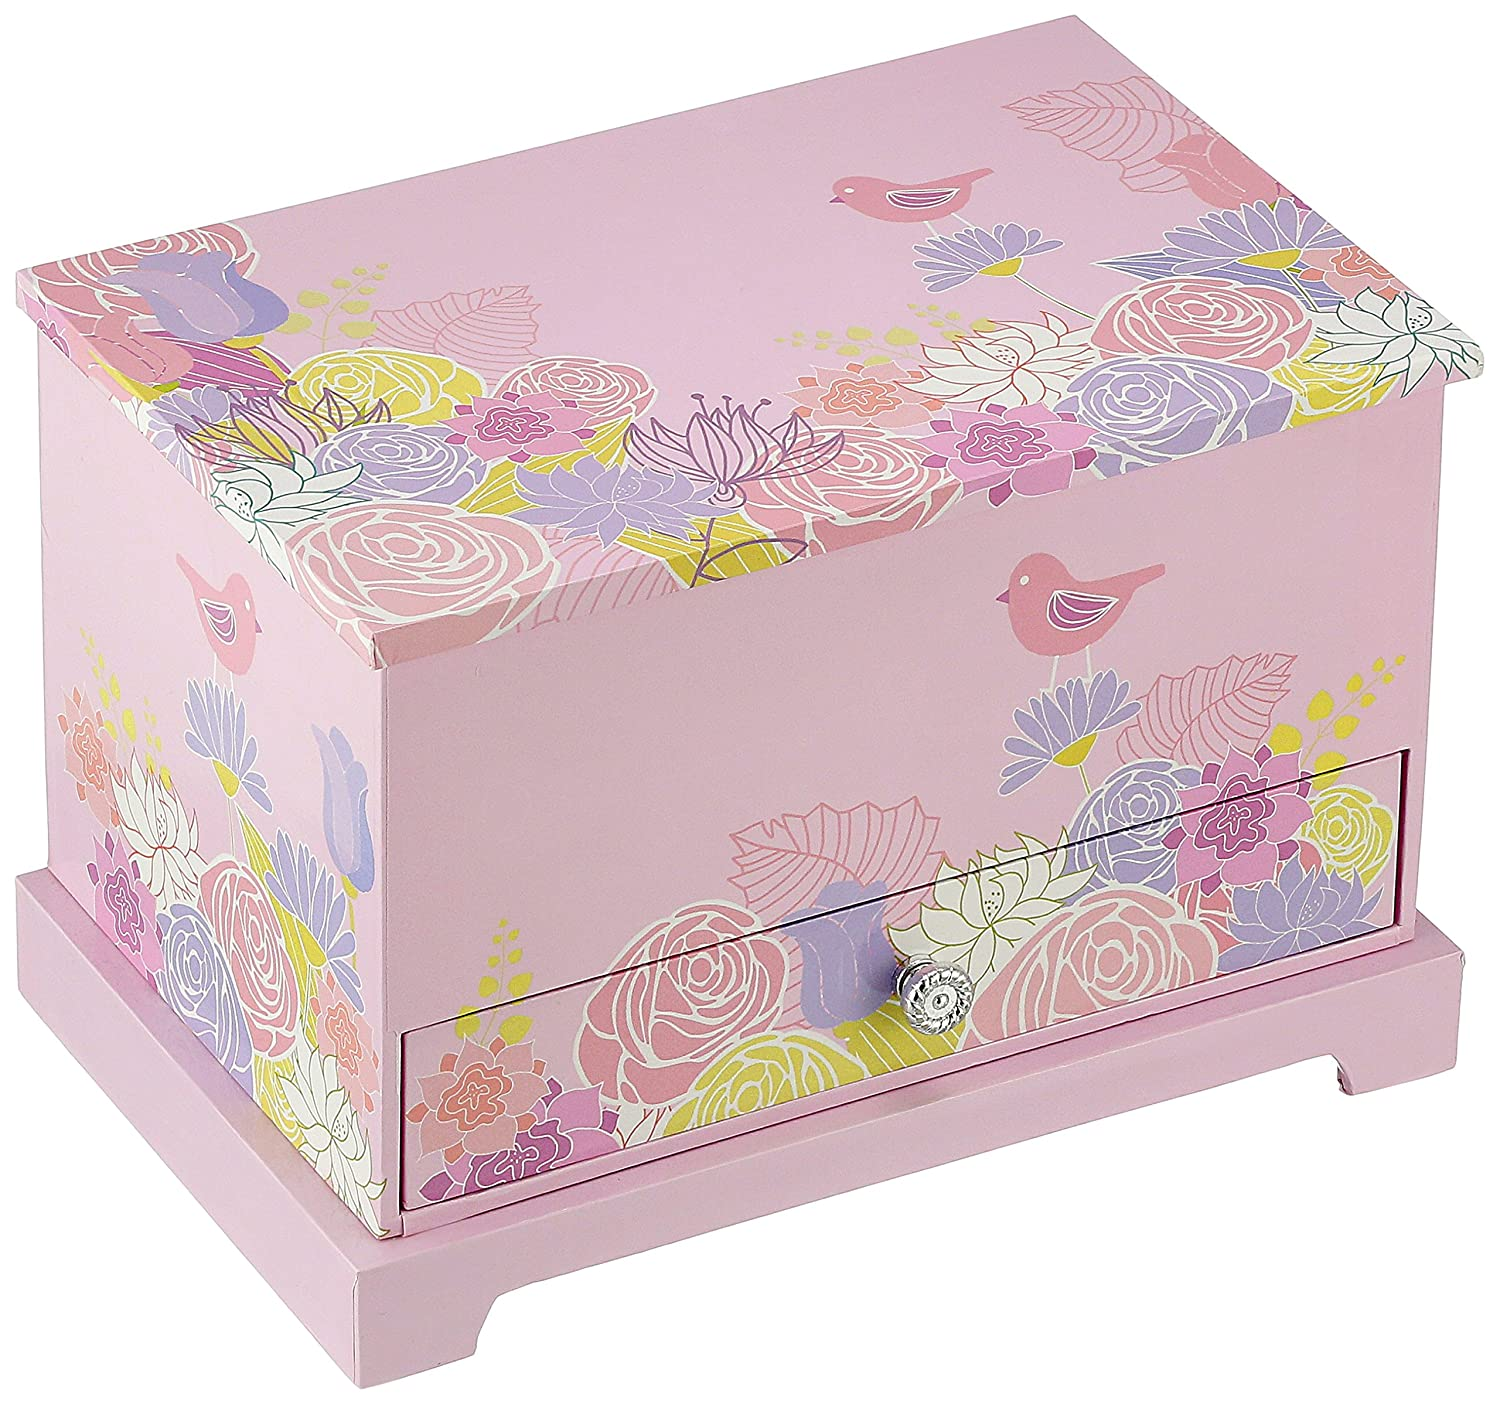 Mele & Co. Piper Girl's Musical Ballerina Jewelry Box 00715S15